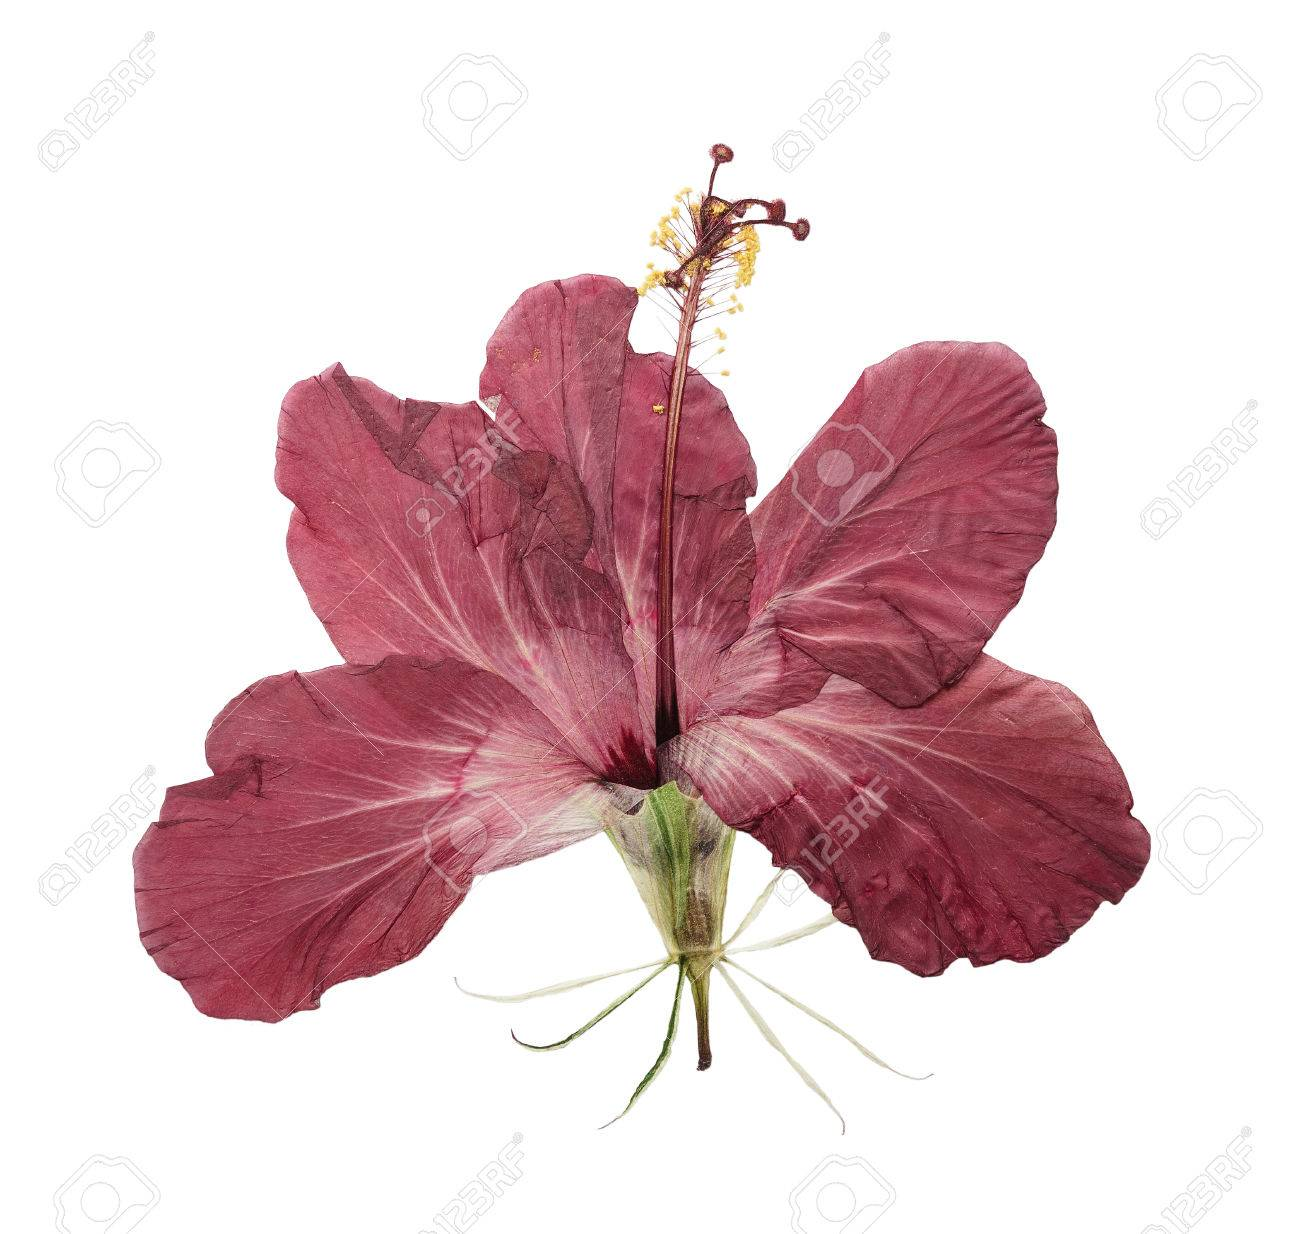 Pressed And Dried Flower Hibiscus Isolated On White Background